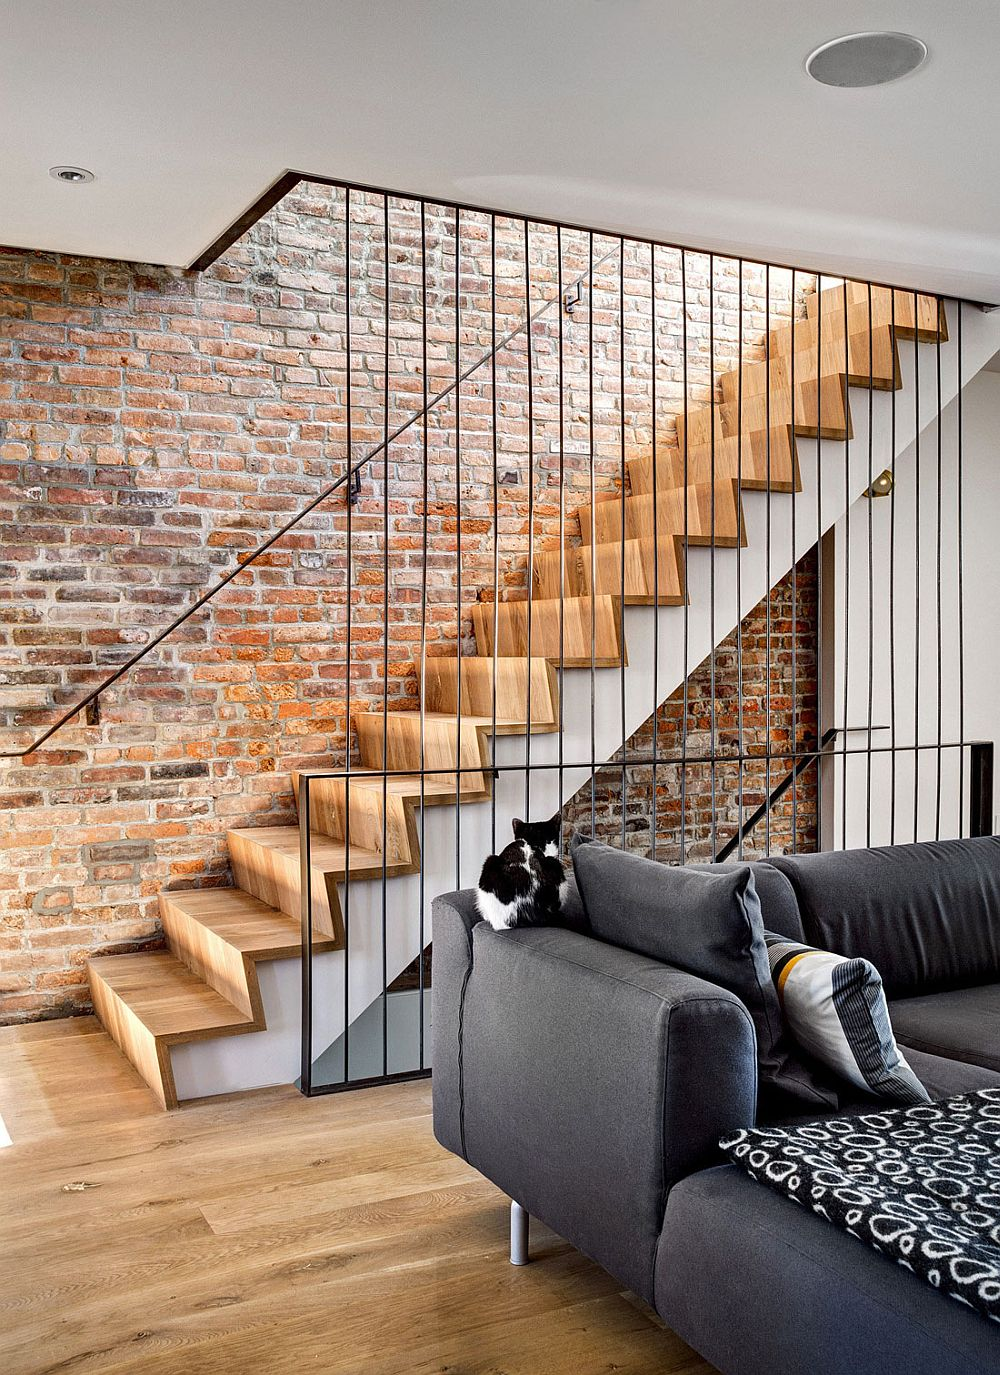 Staircase offers a blend of contrasting textures and materials